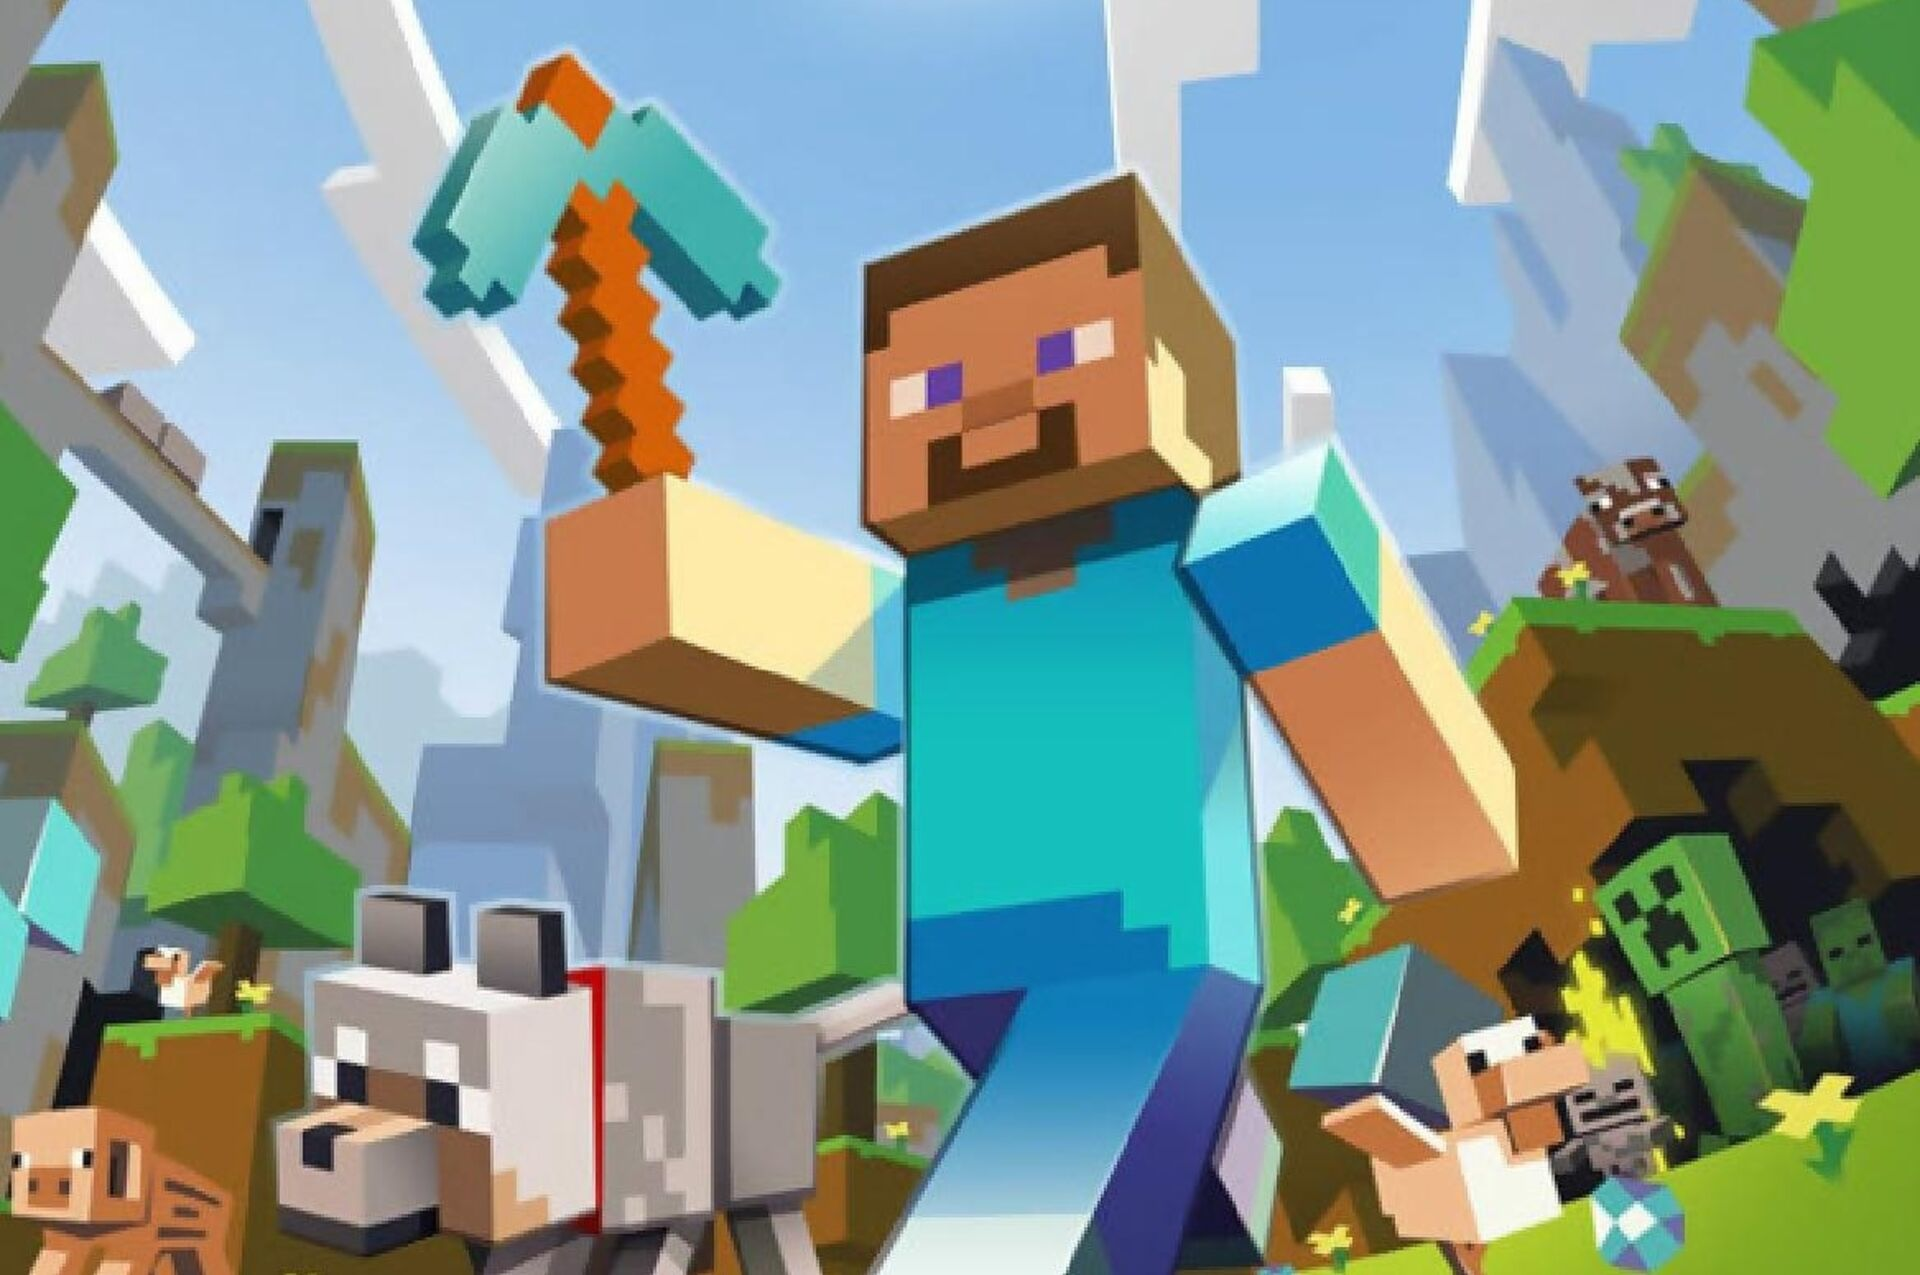 Wave of bomb threats to UK schools blamed on Minecraft